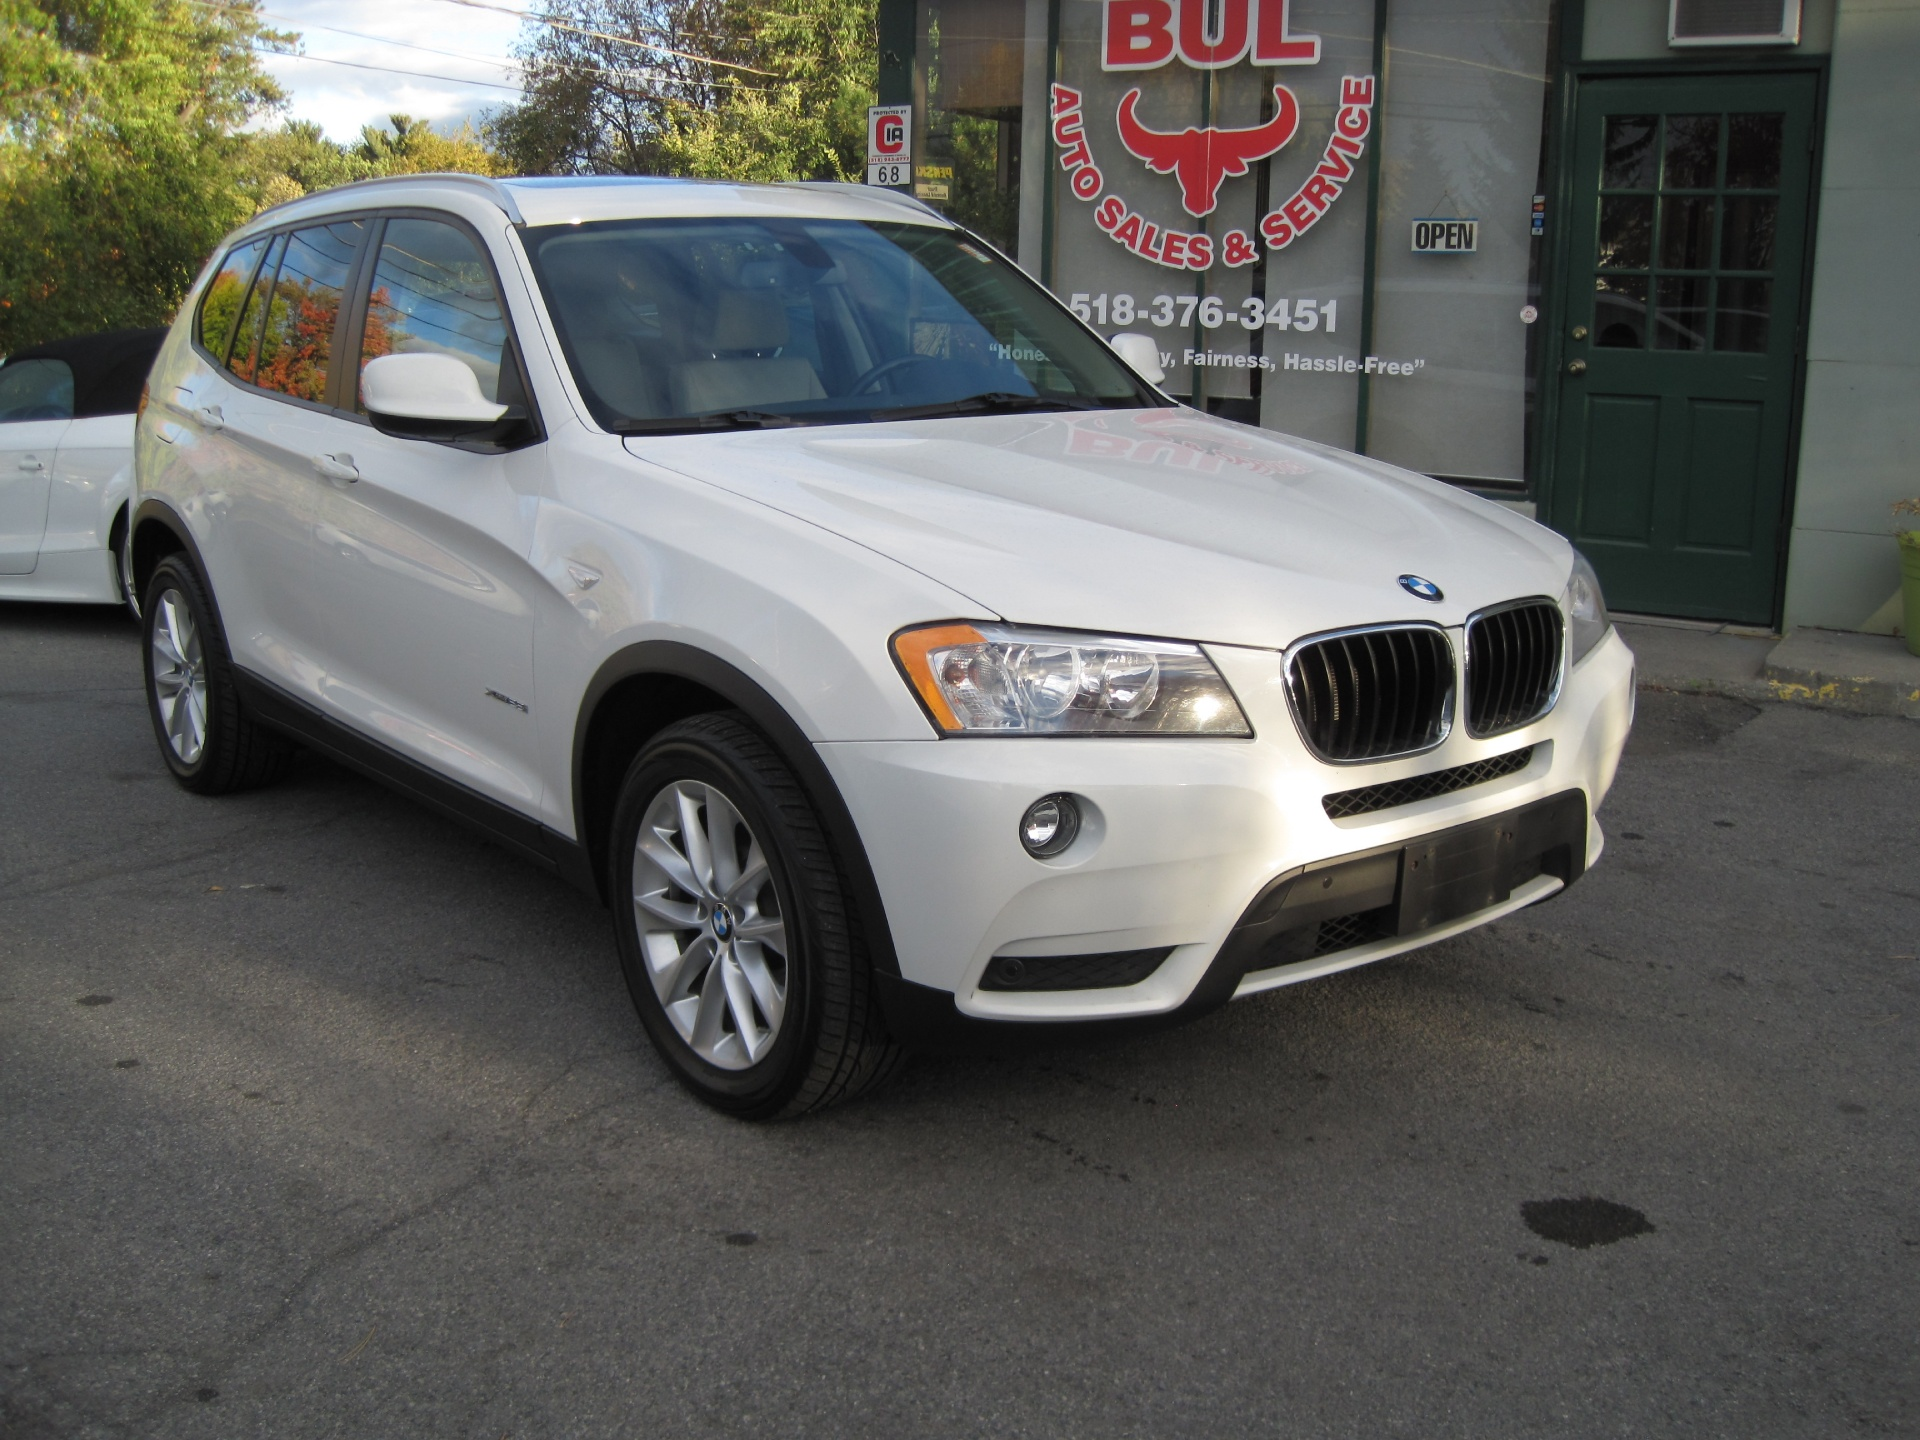 2013 bmw x3 xdrive28i awd premium technology heated seats. Black Bedroom Furniture Sets. Home Design Ideas